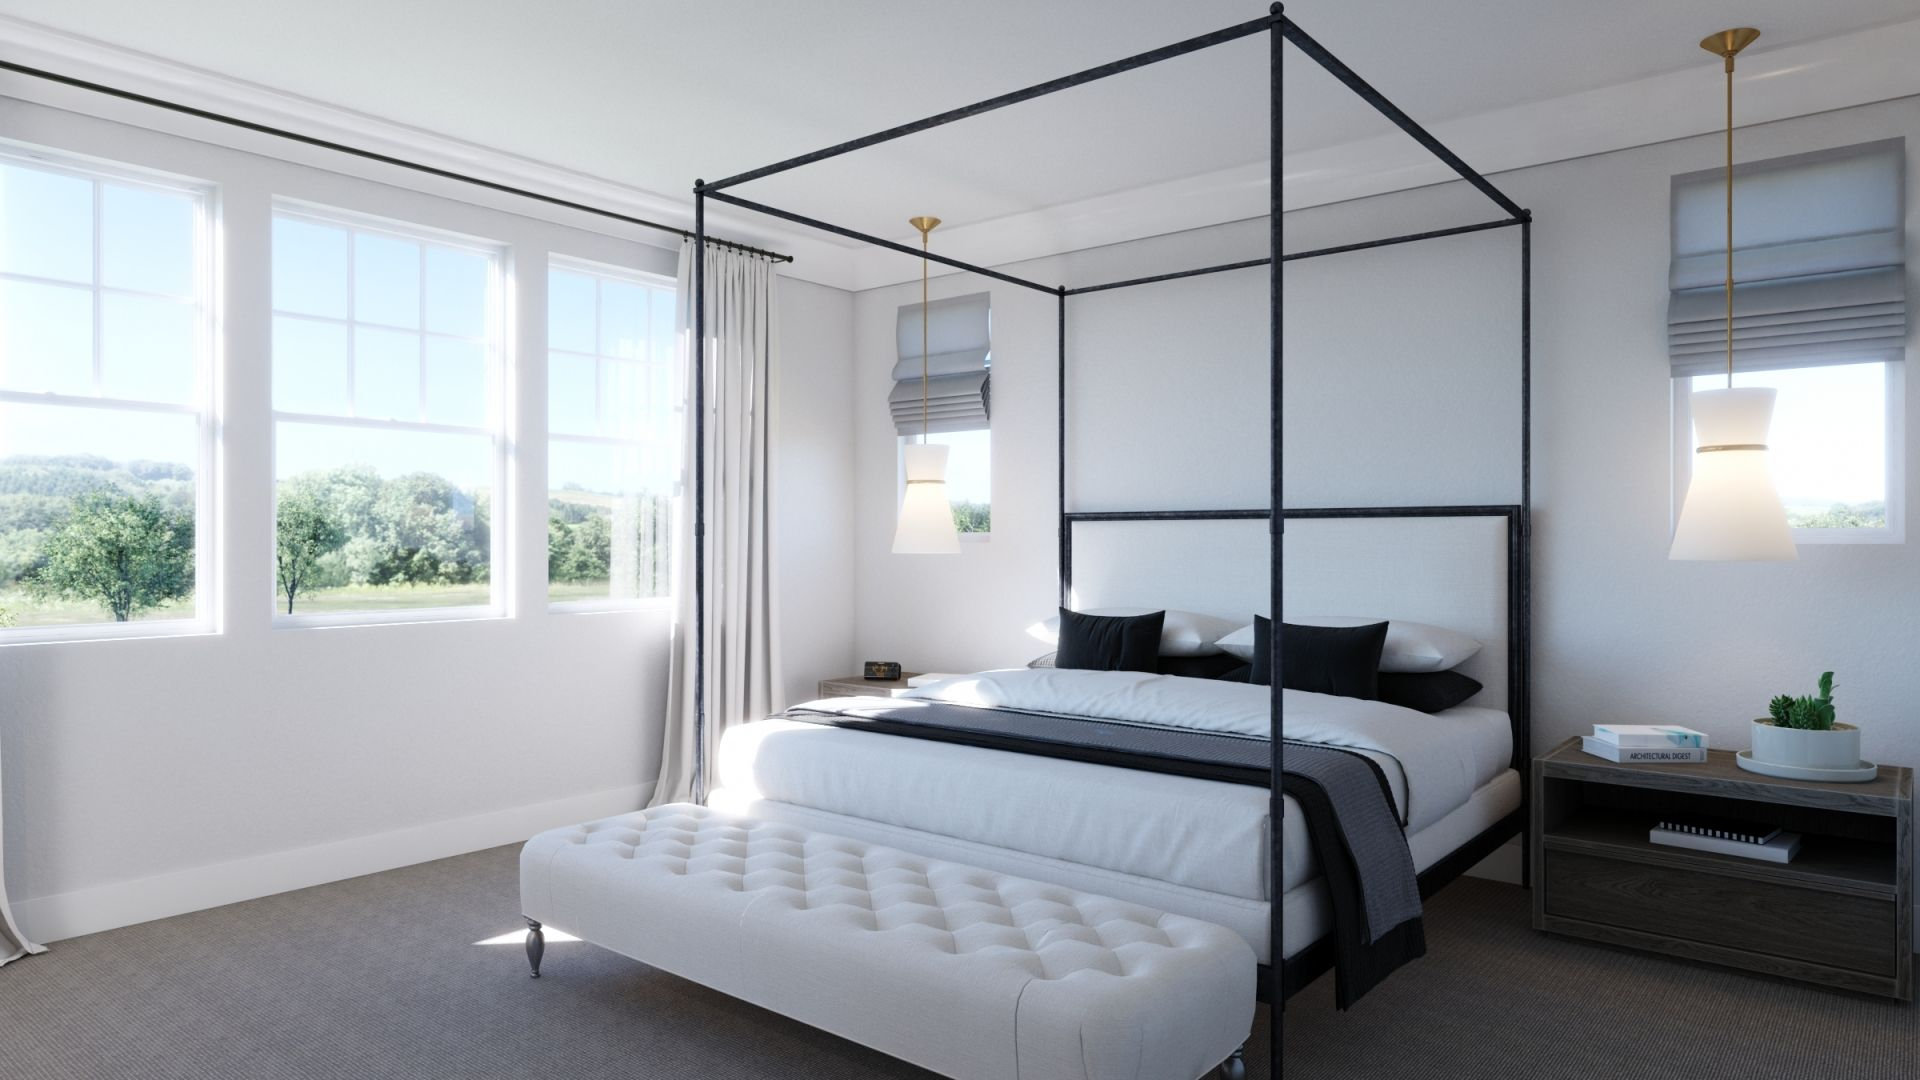 Bedroom featured in the 6B By SummerHill Homes in San Jose, CA